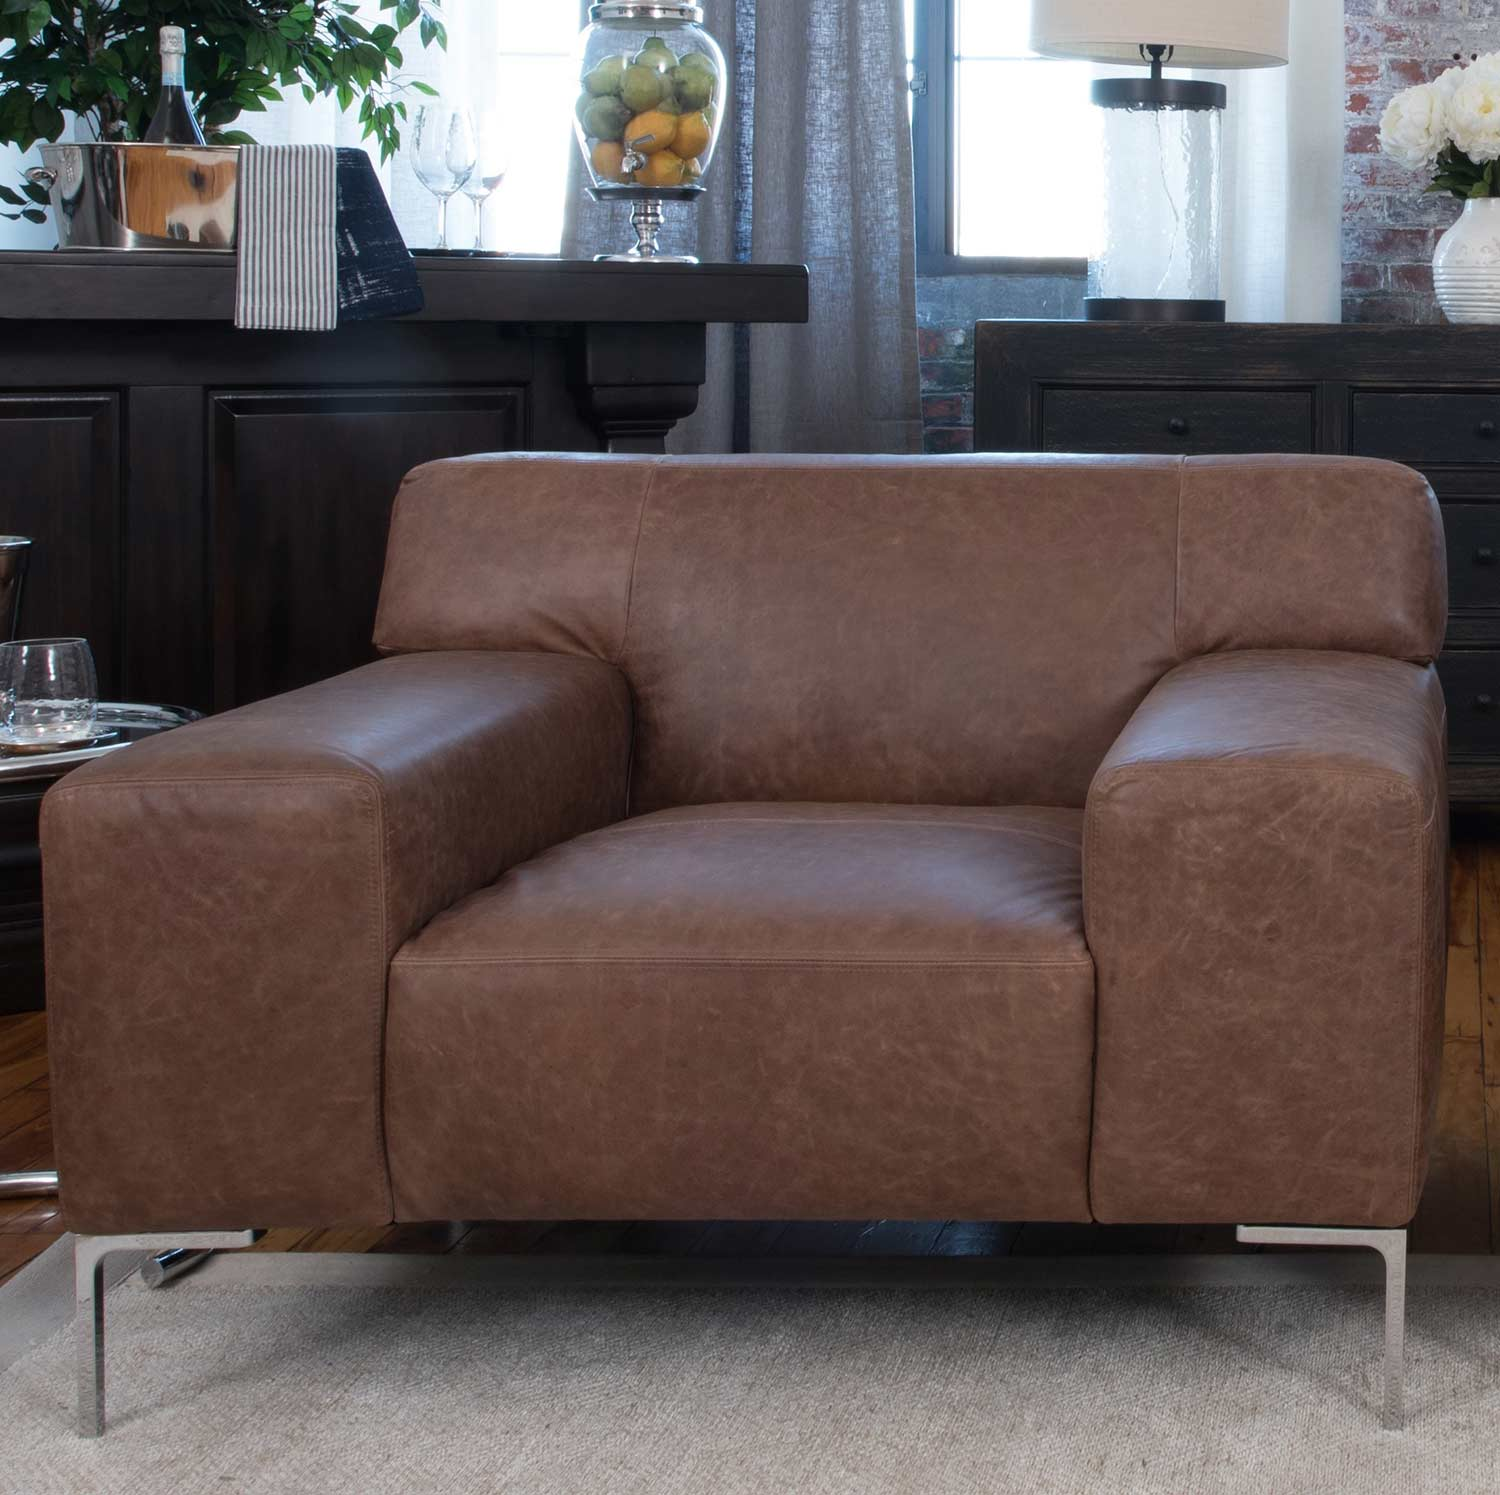 ELEMENTS Fine Home Furnishings Industrial Top Grain Leather Chair